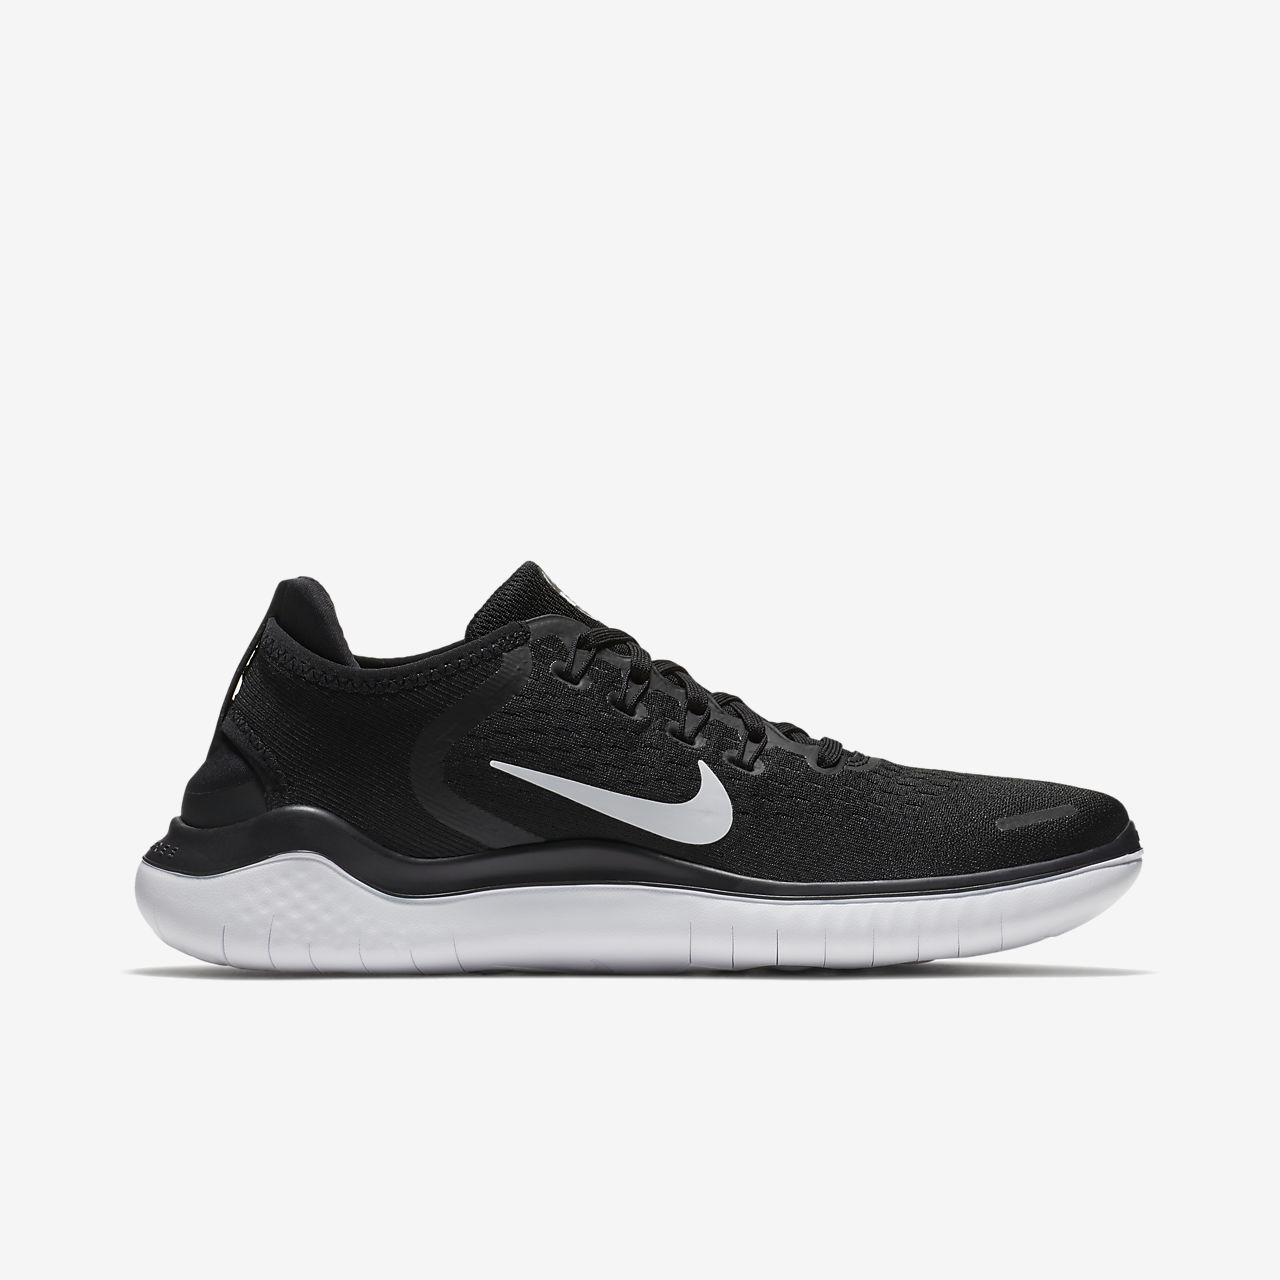 low priced d4149 8e016 Nike Free RN 2018 Men's Running Shoe